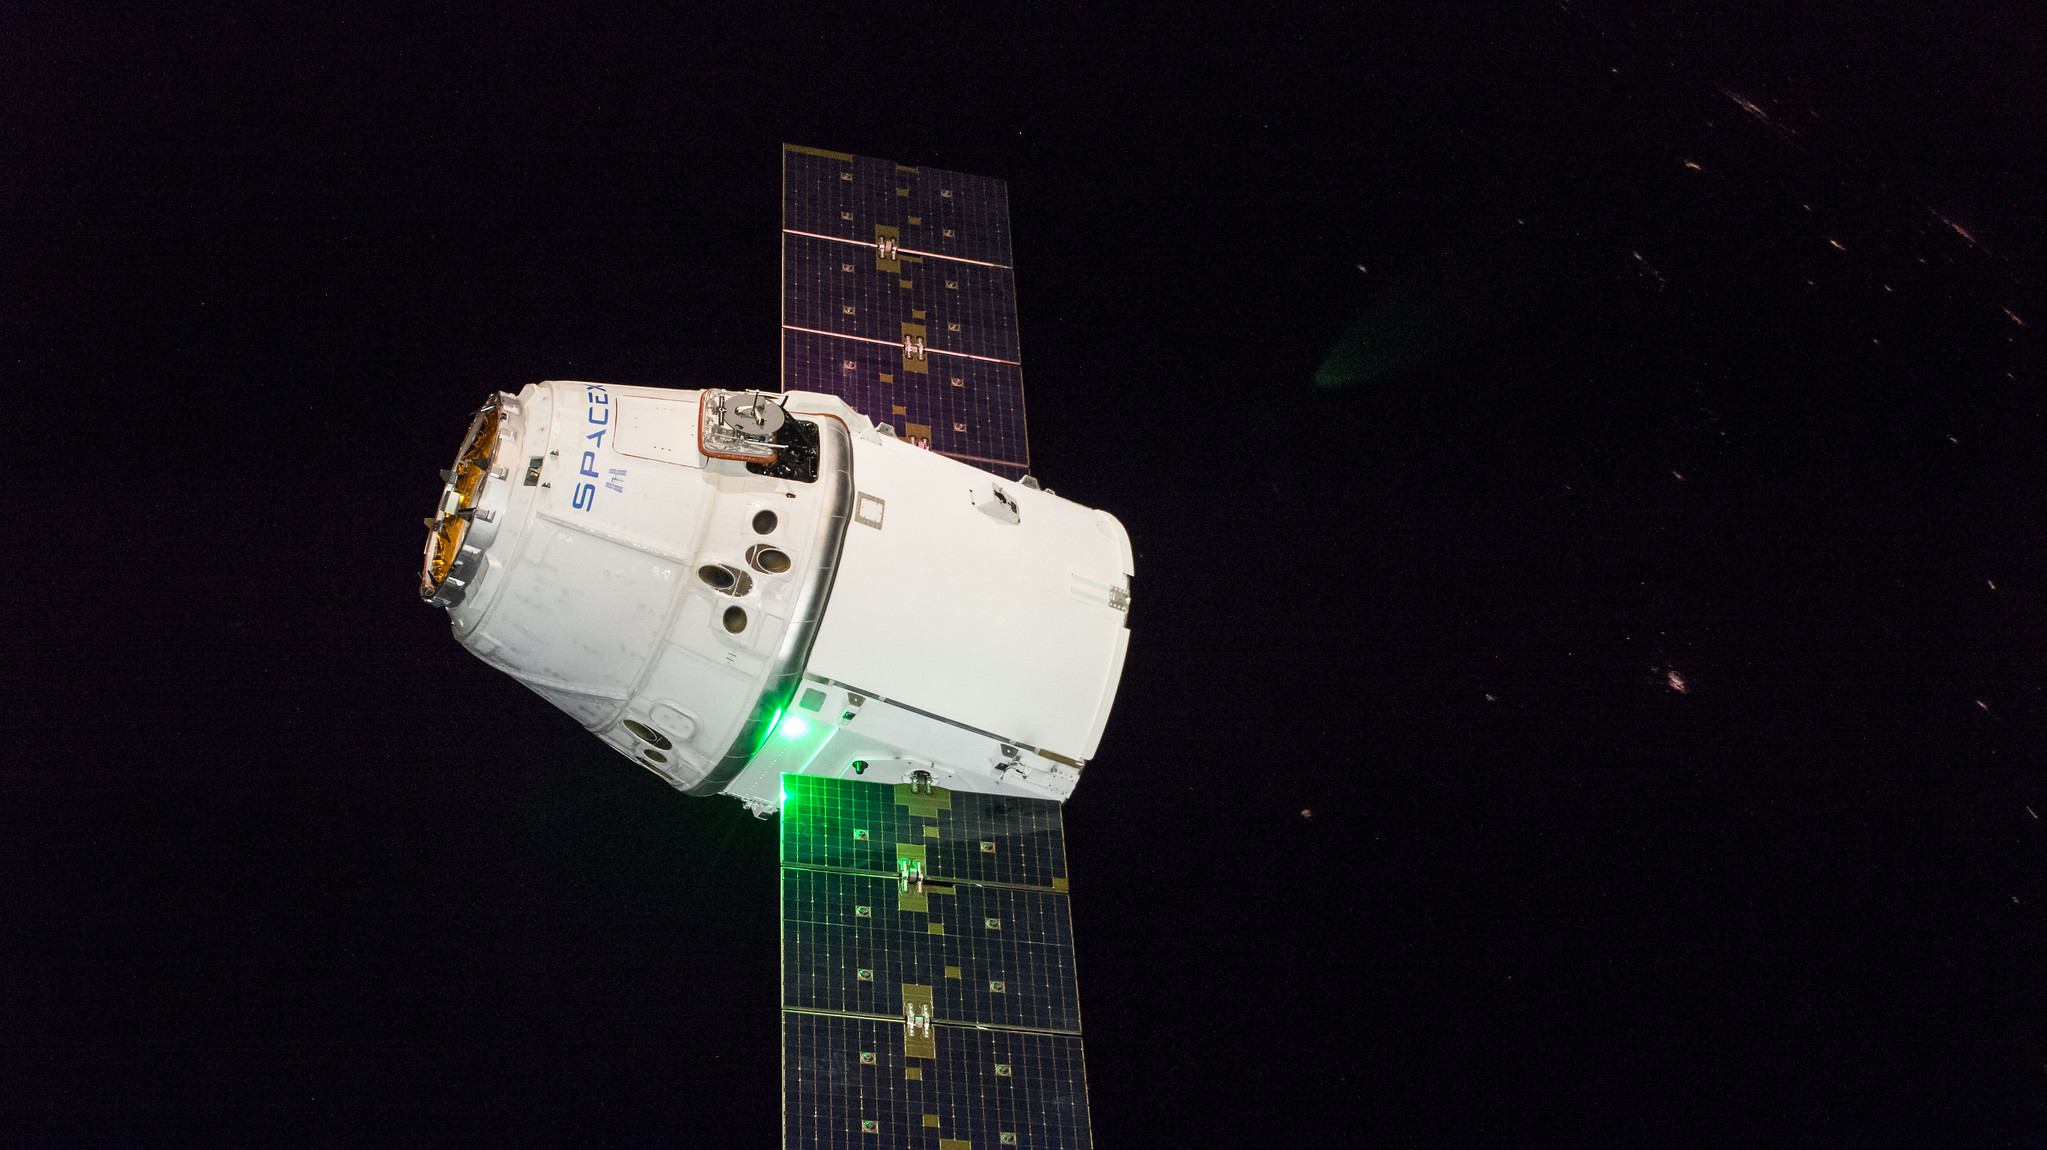 The SpaceX Dragon